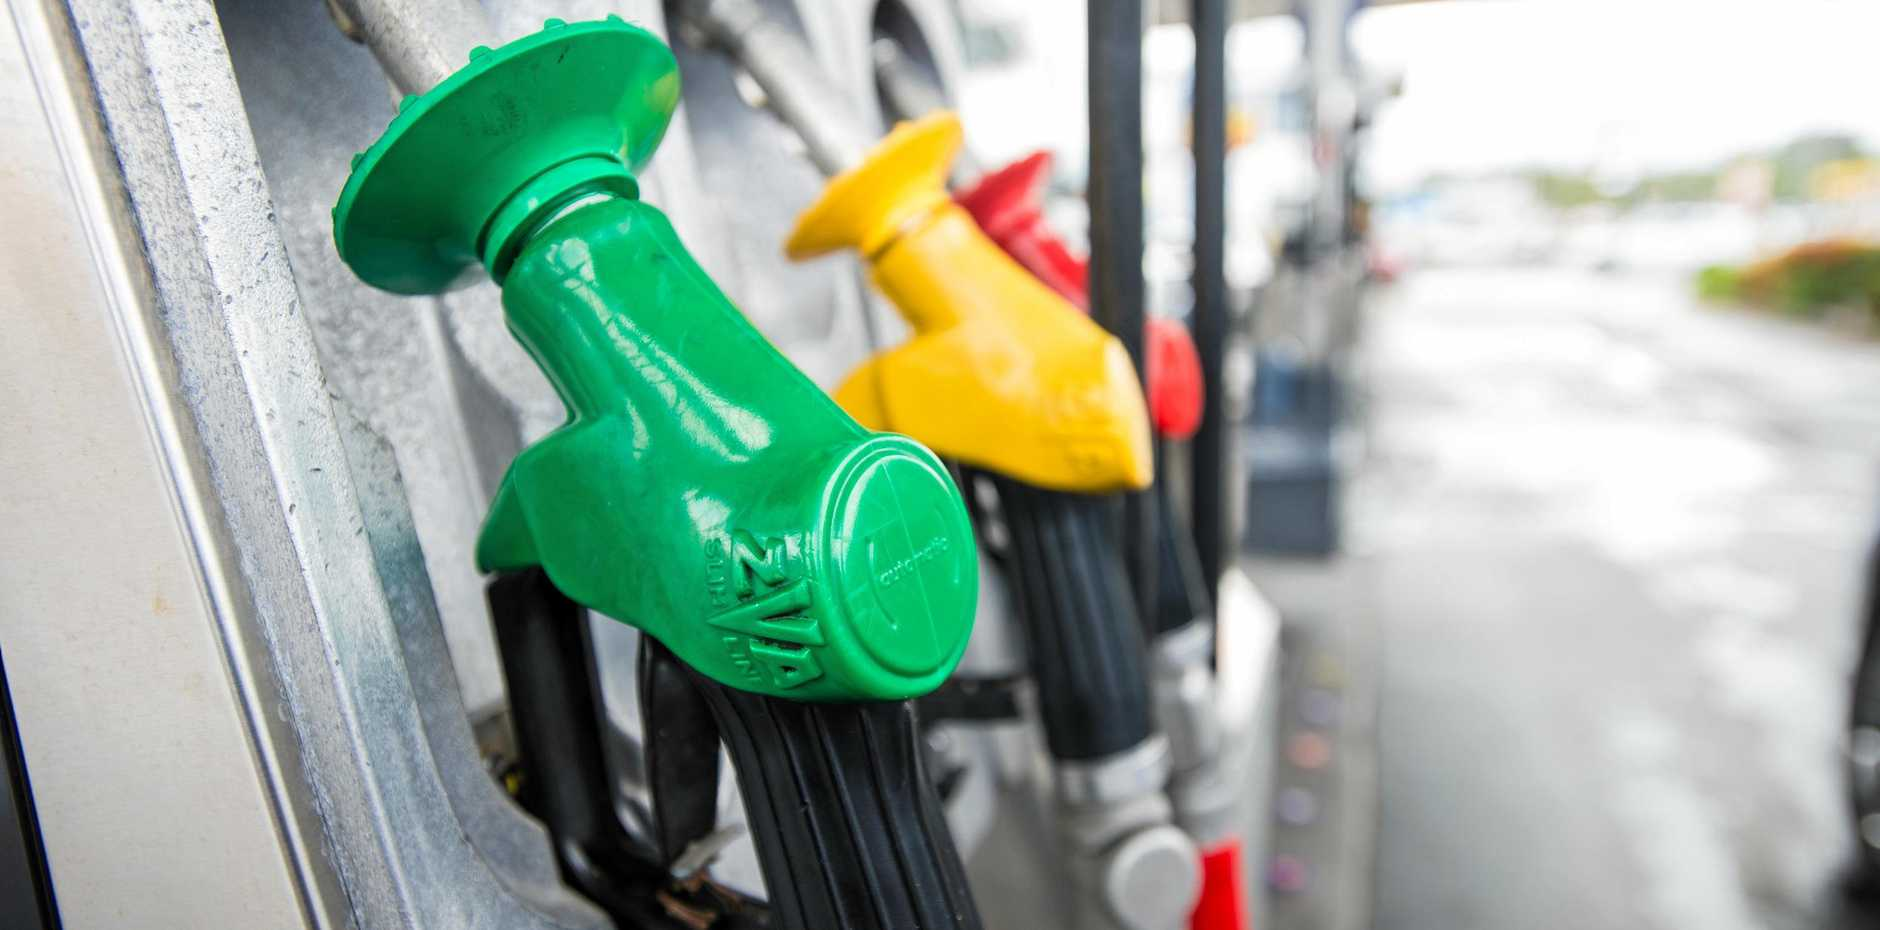 If you're filling up for a Christmas roadtrip or holiday today, here is a helpful list of where to find cheap fuel, and where to avoid